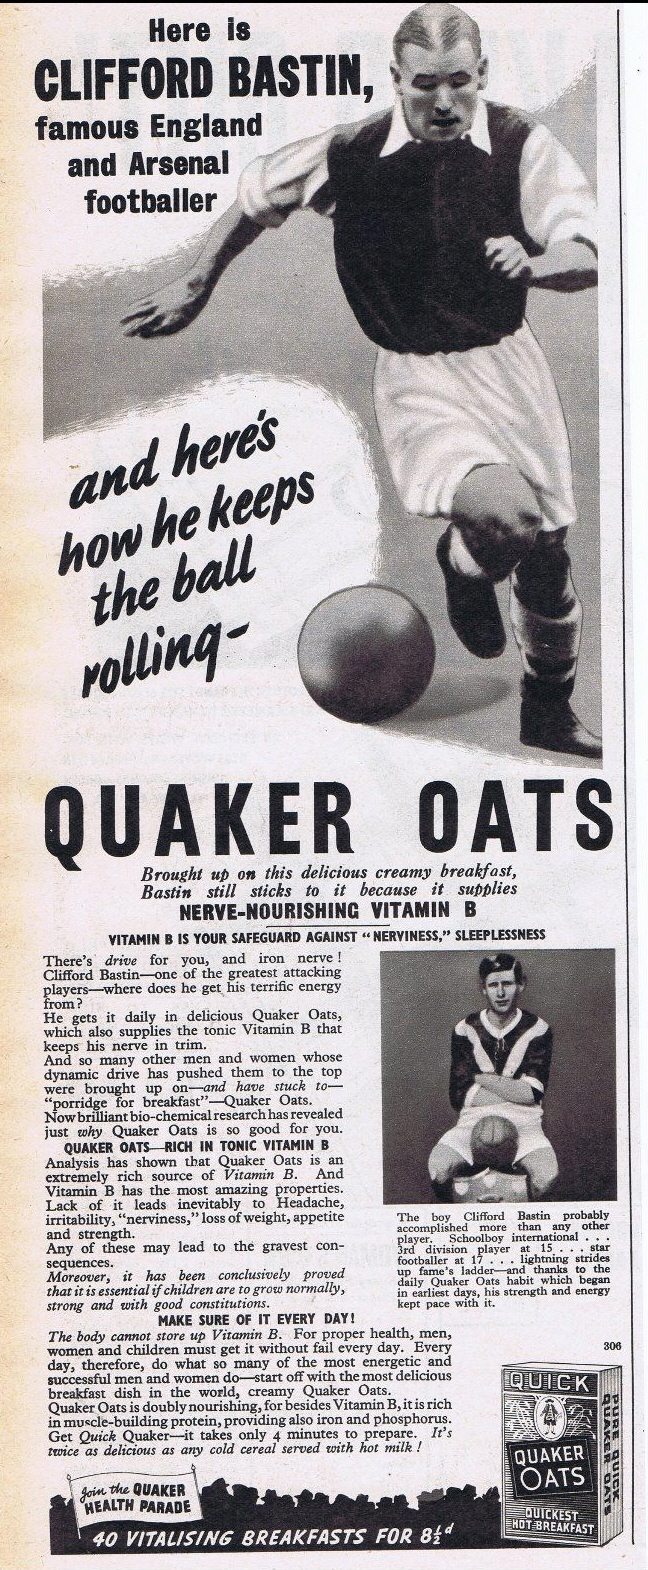 1938 Quaker Oats advert